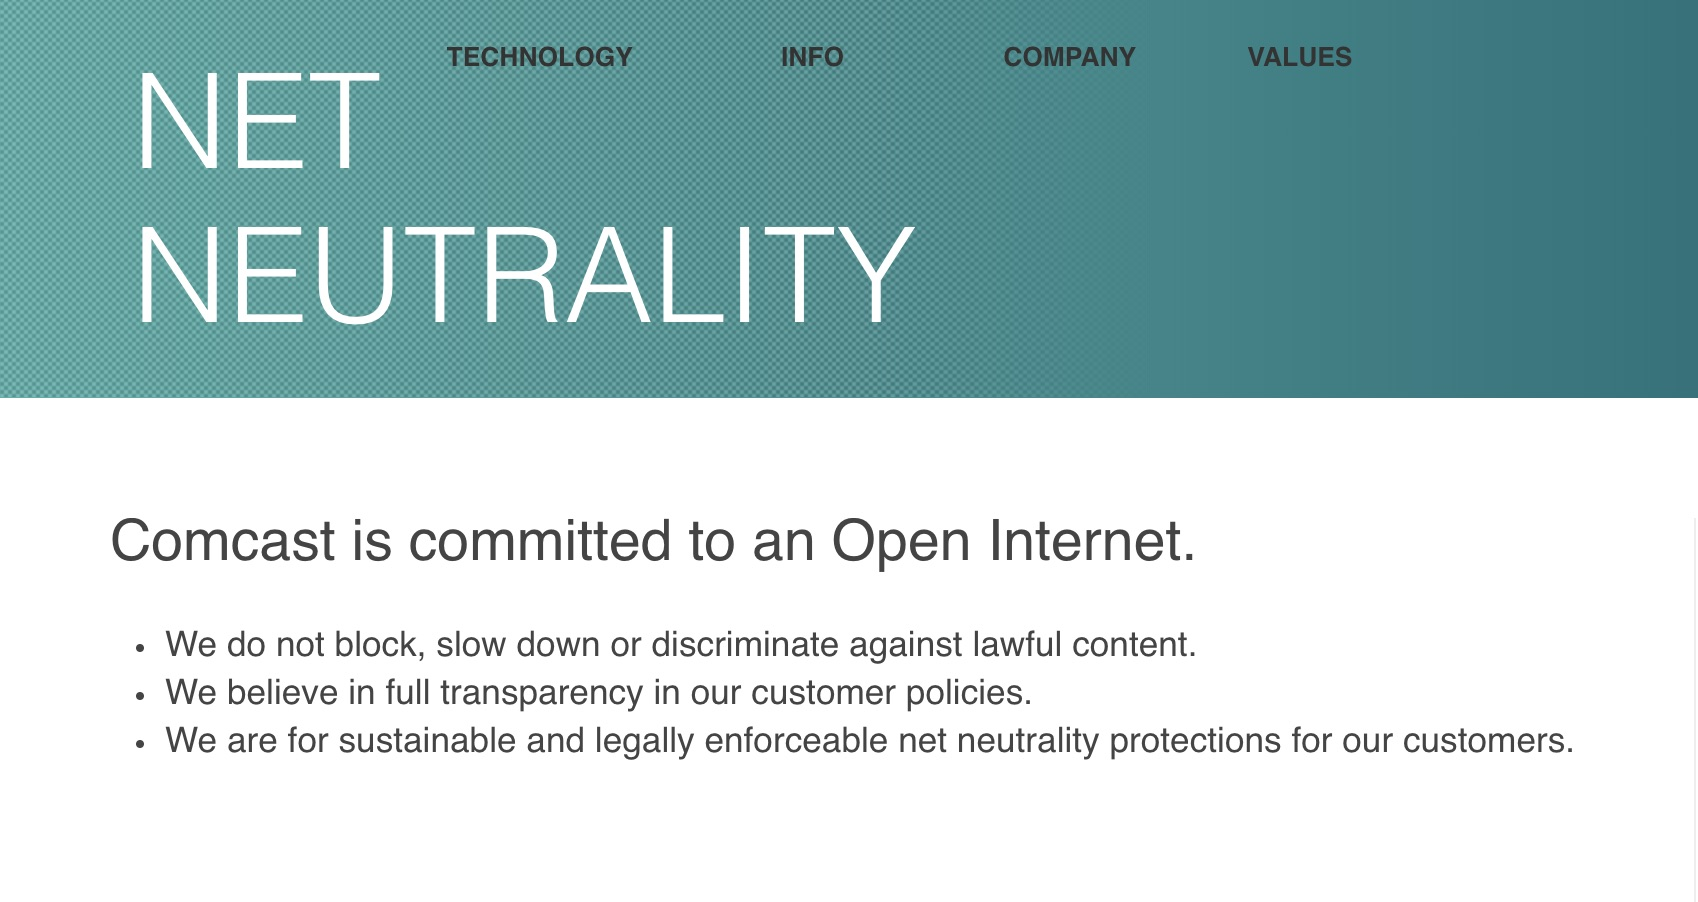 Comcast's net neutrality promise since April 27, 2017.